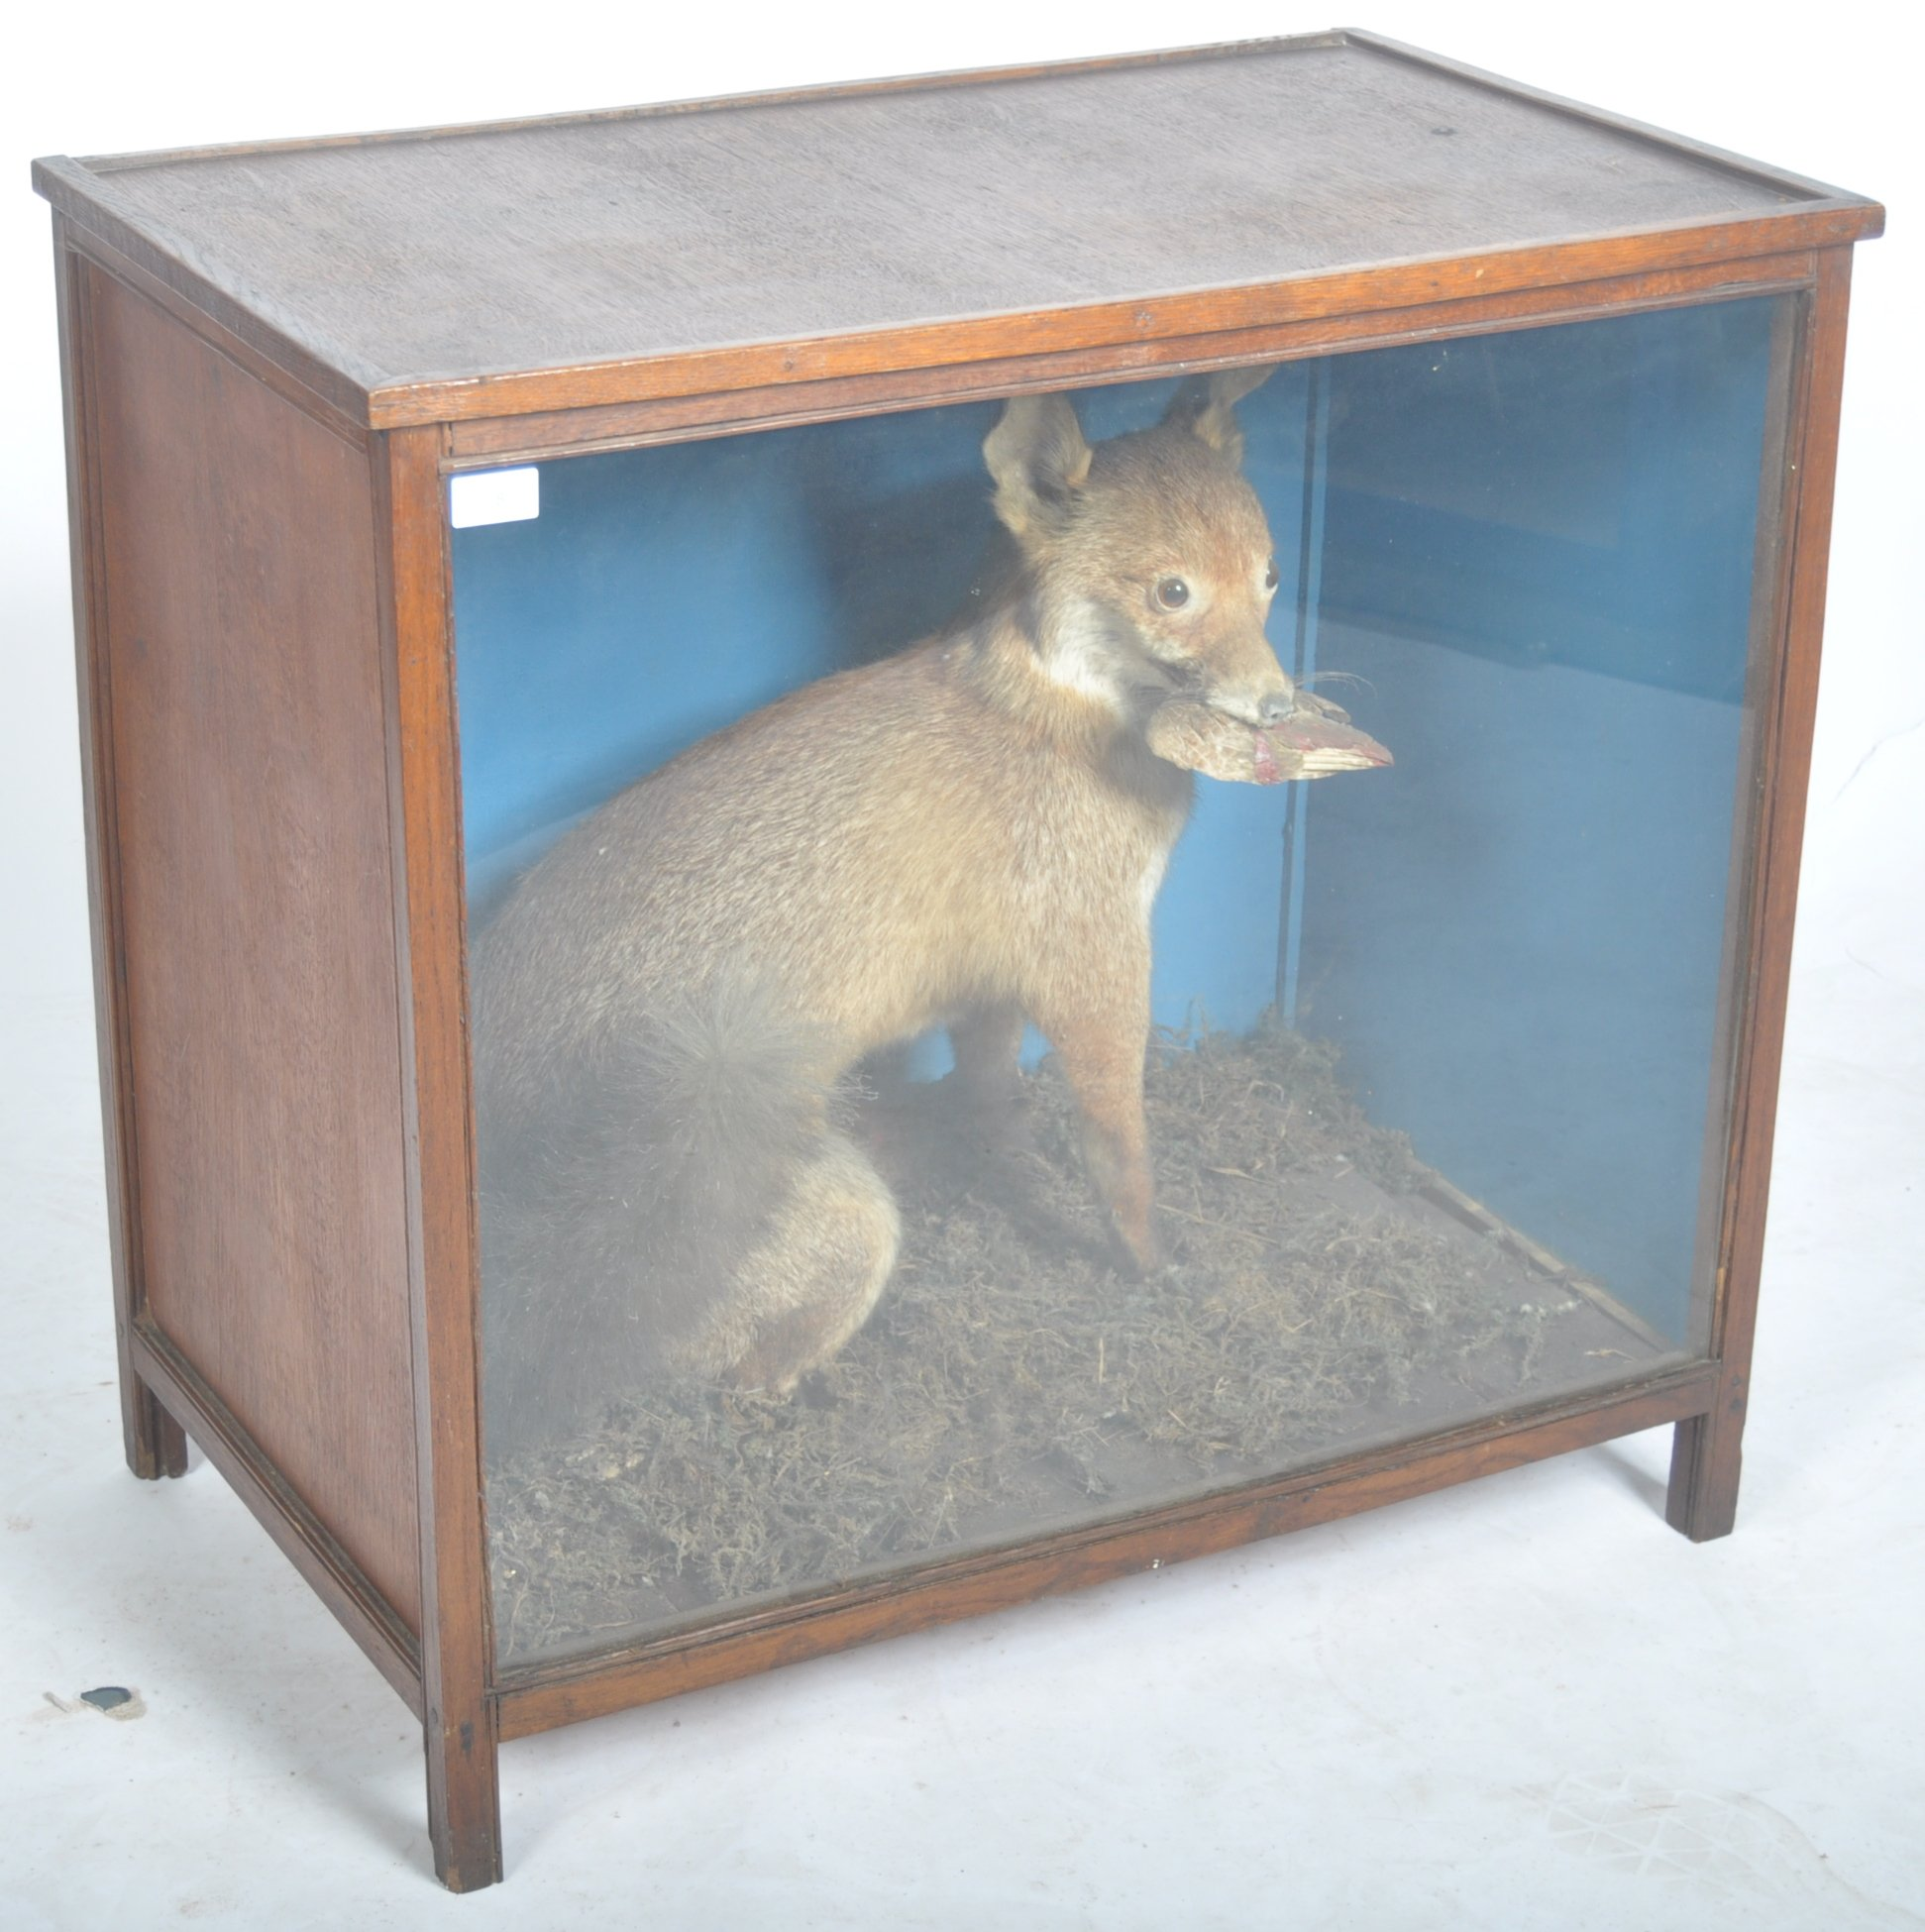 VICTORIAN CASED TAXIDERMY EXAMPLE OF A FOX - Image 2 of 6